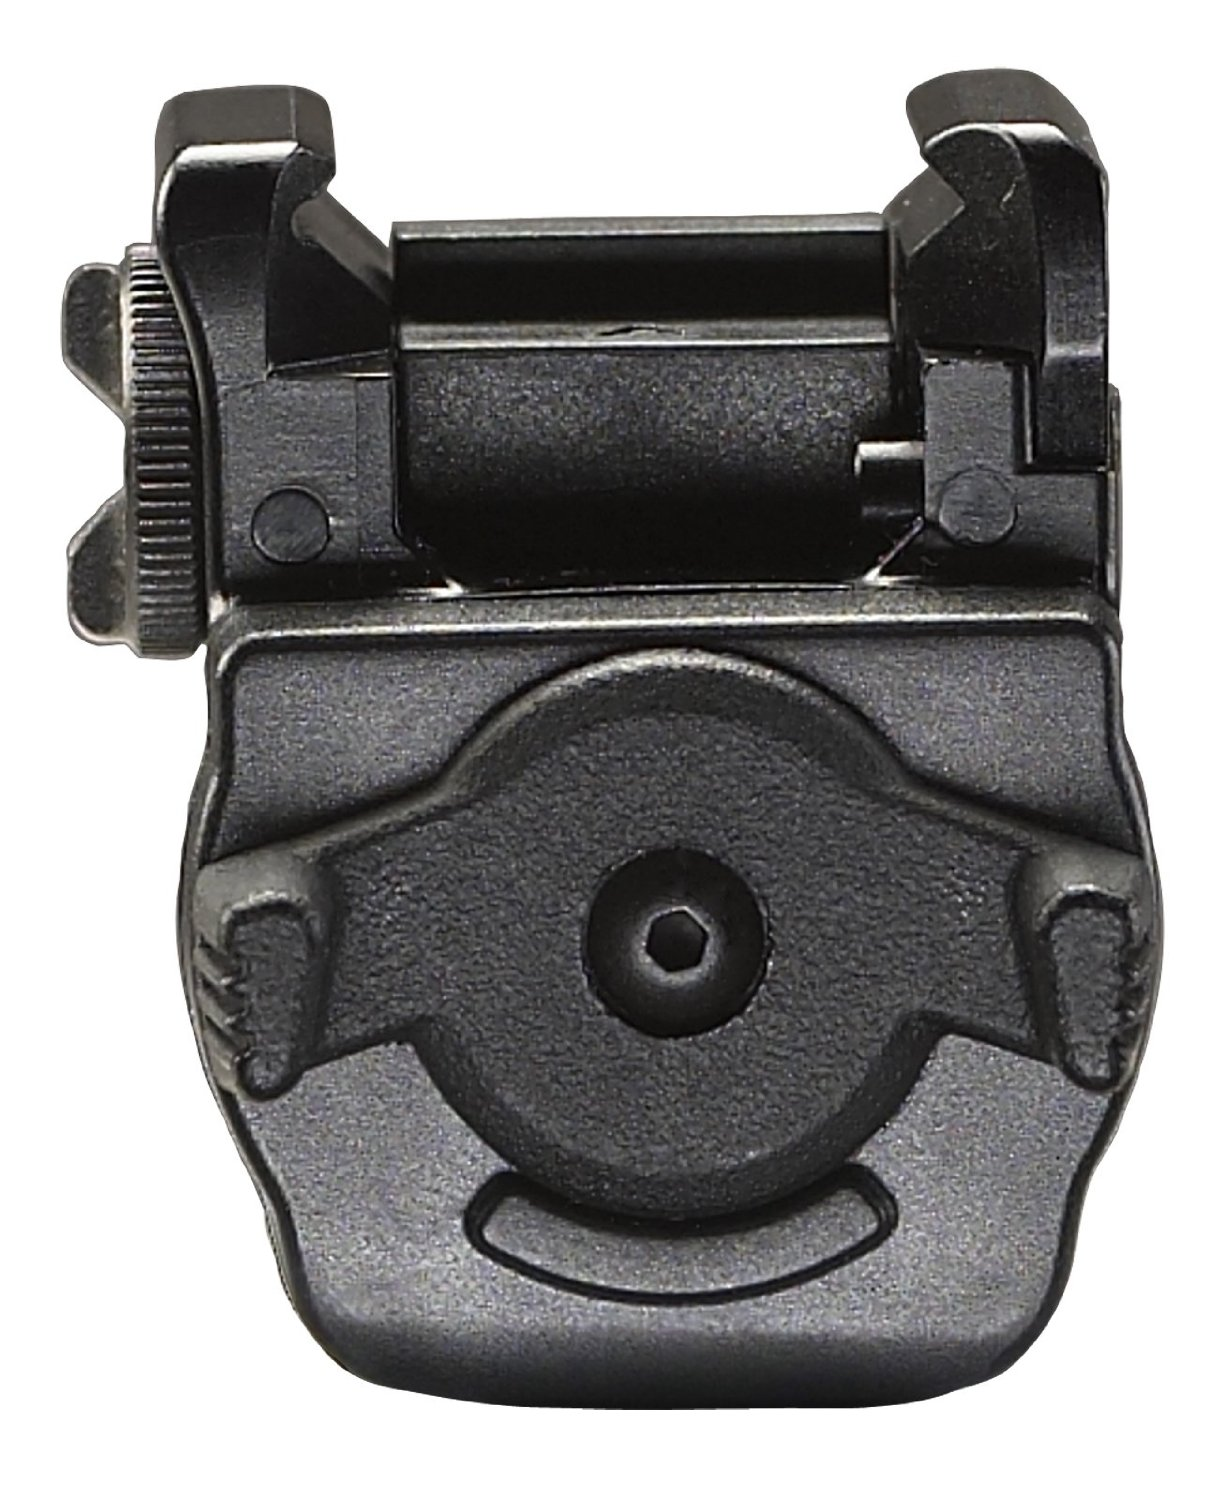 StreamLight TLR-3 On/Off Switch